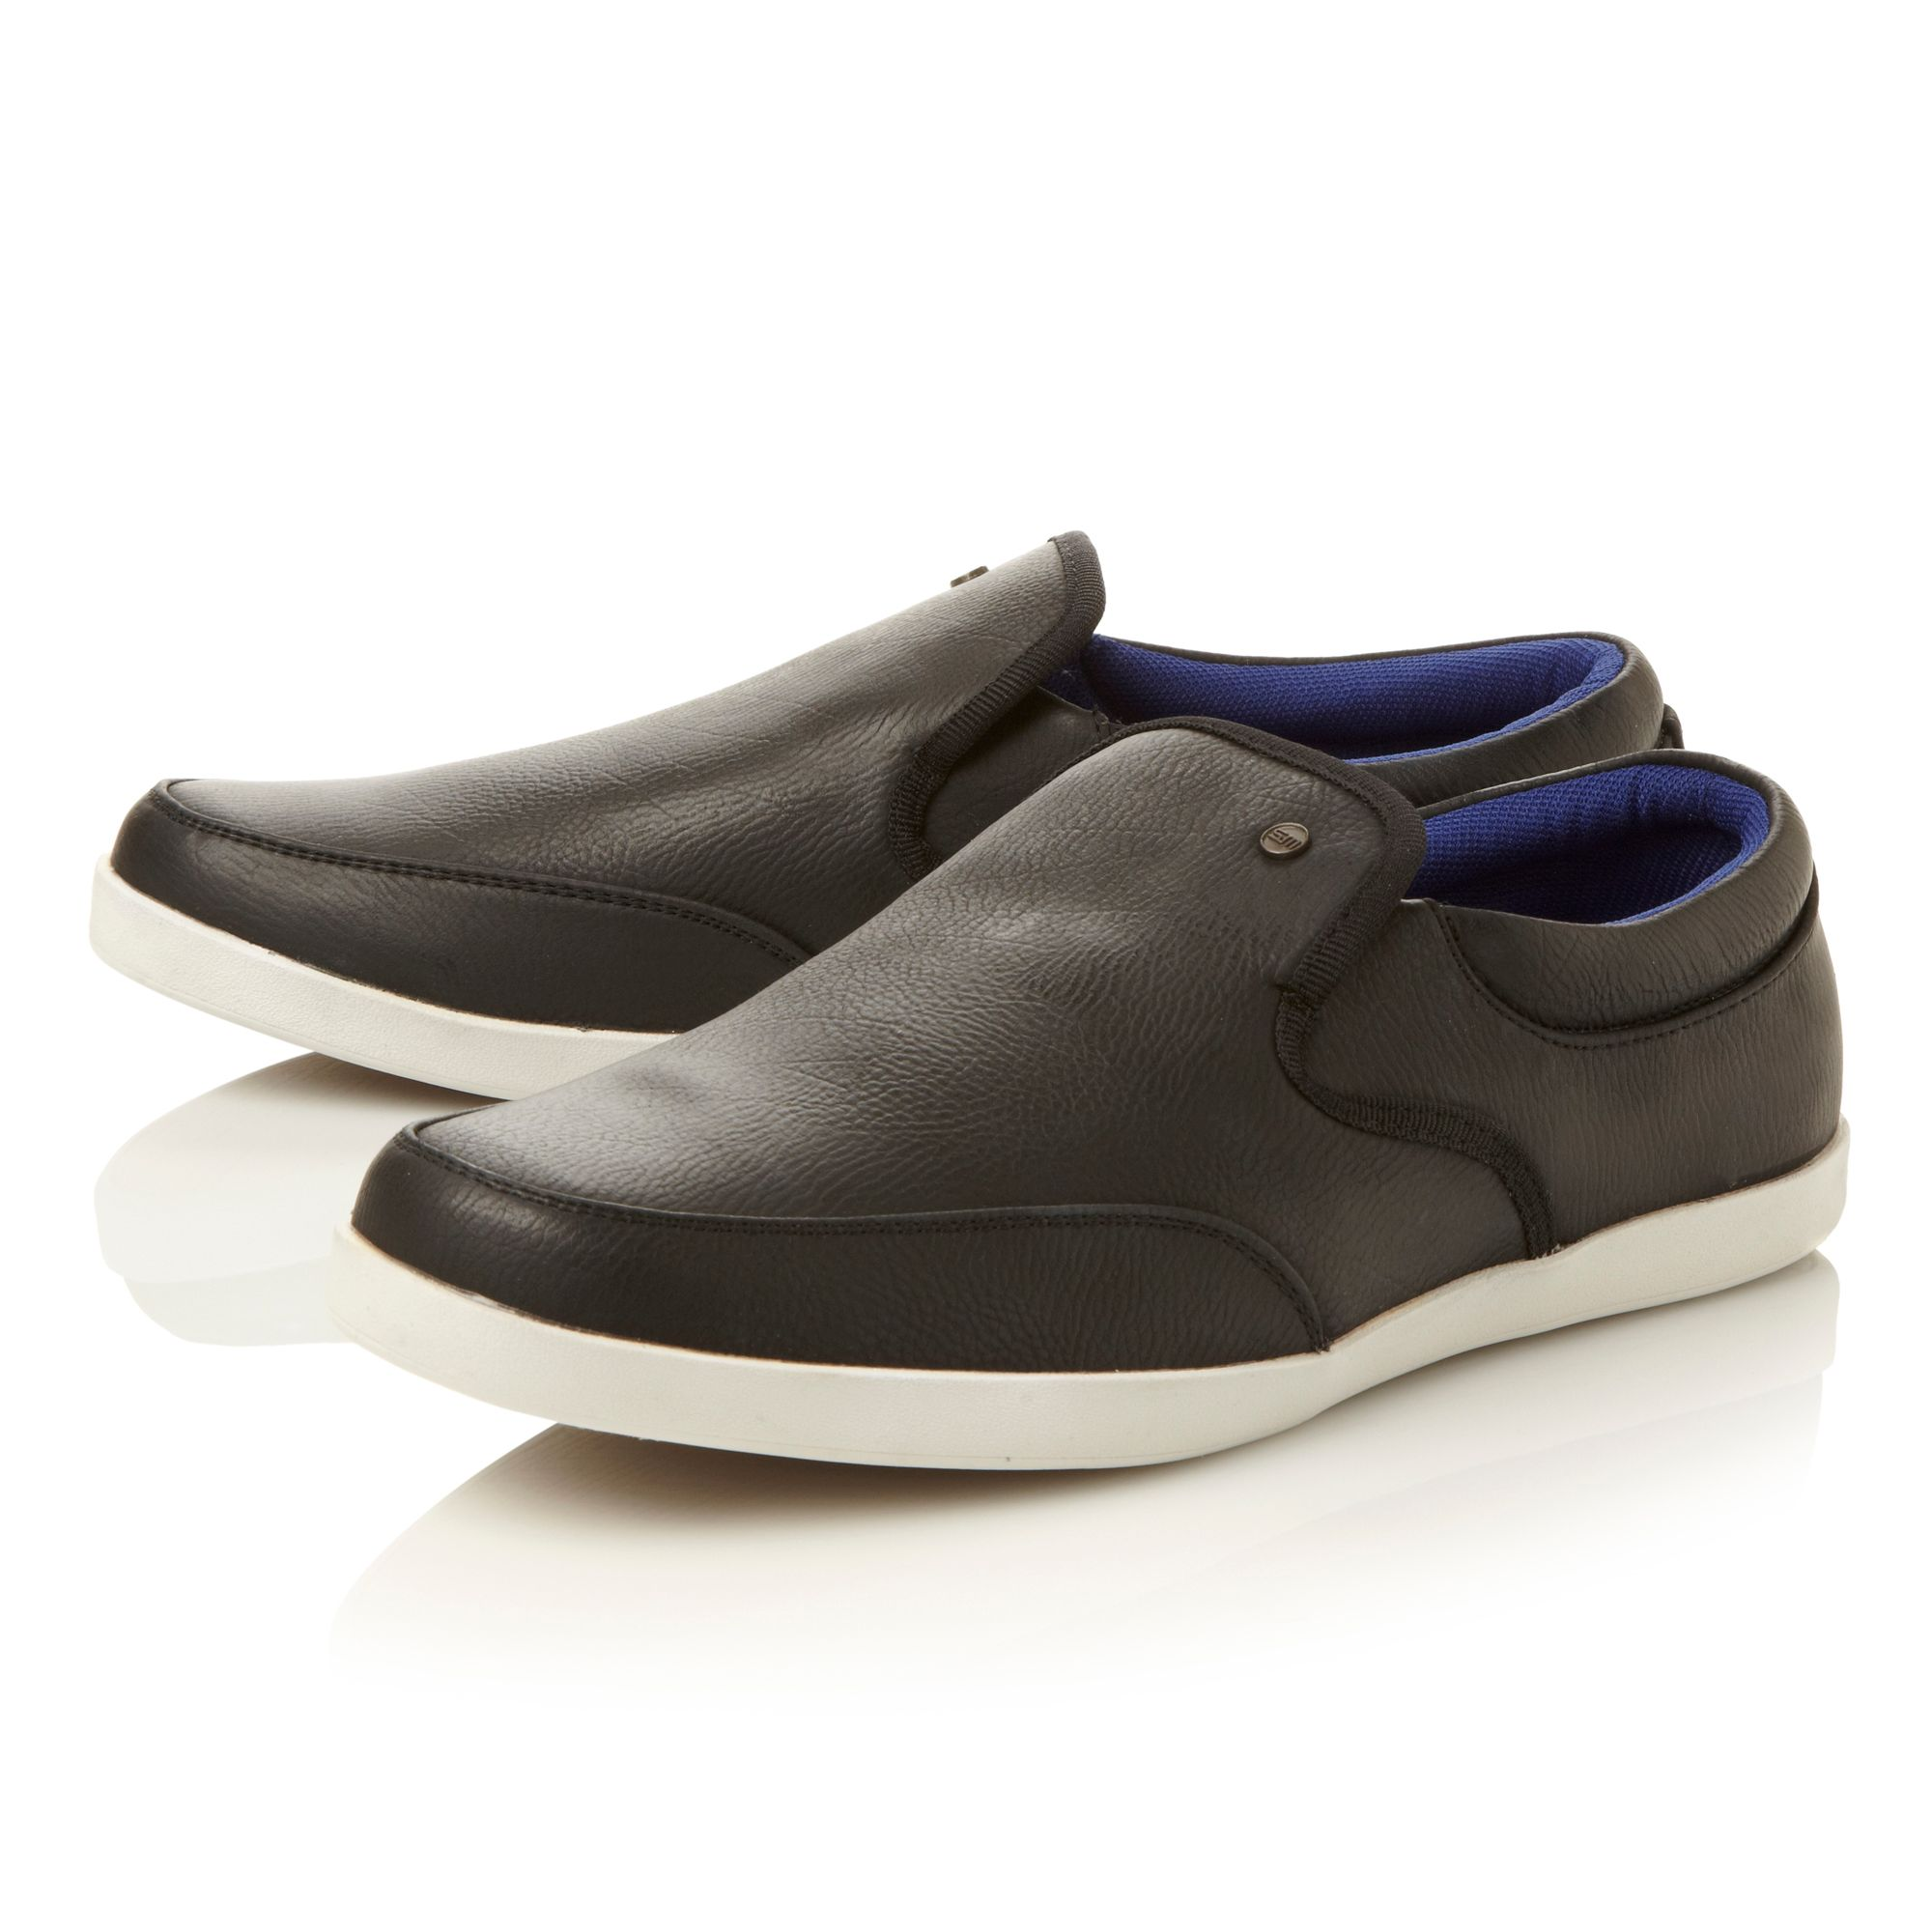 Gavin white sole sporty slip on